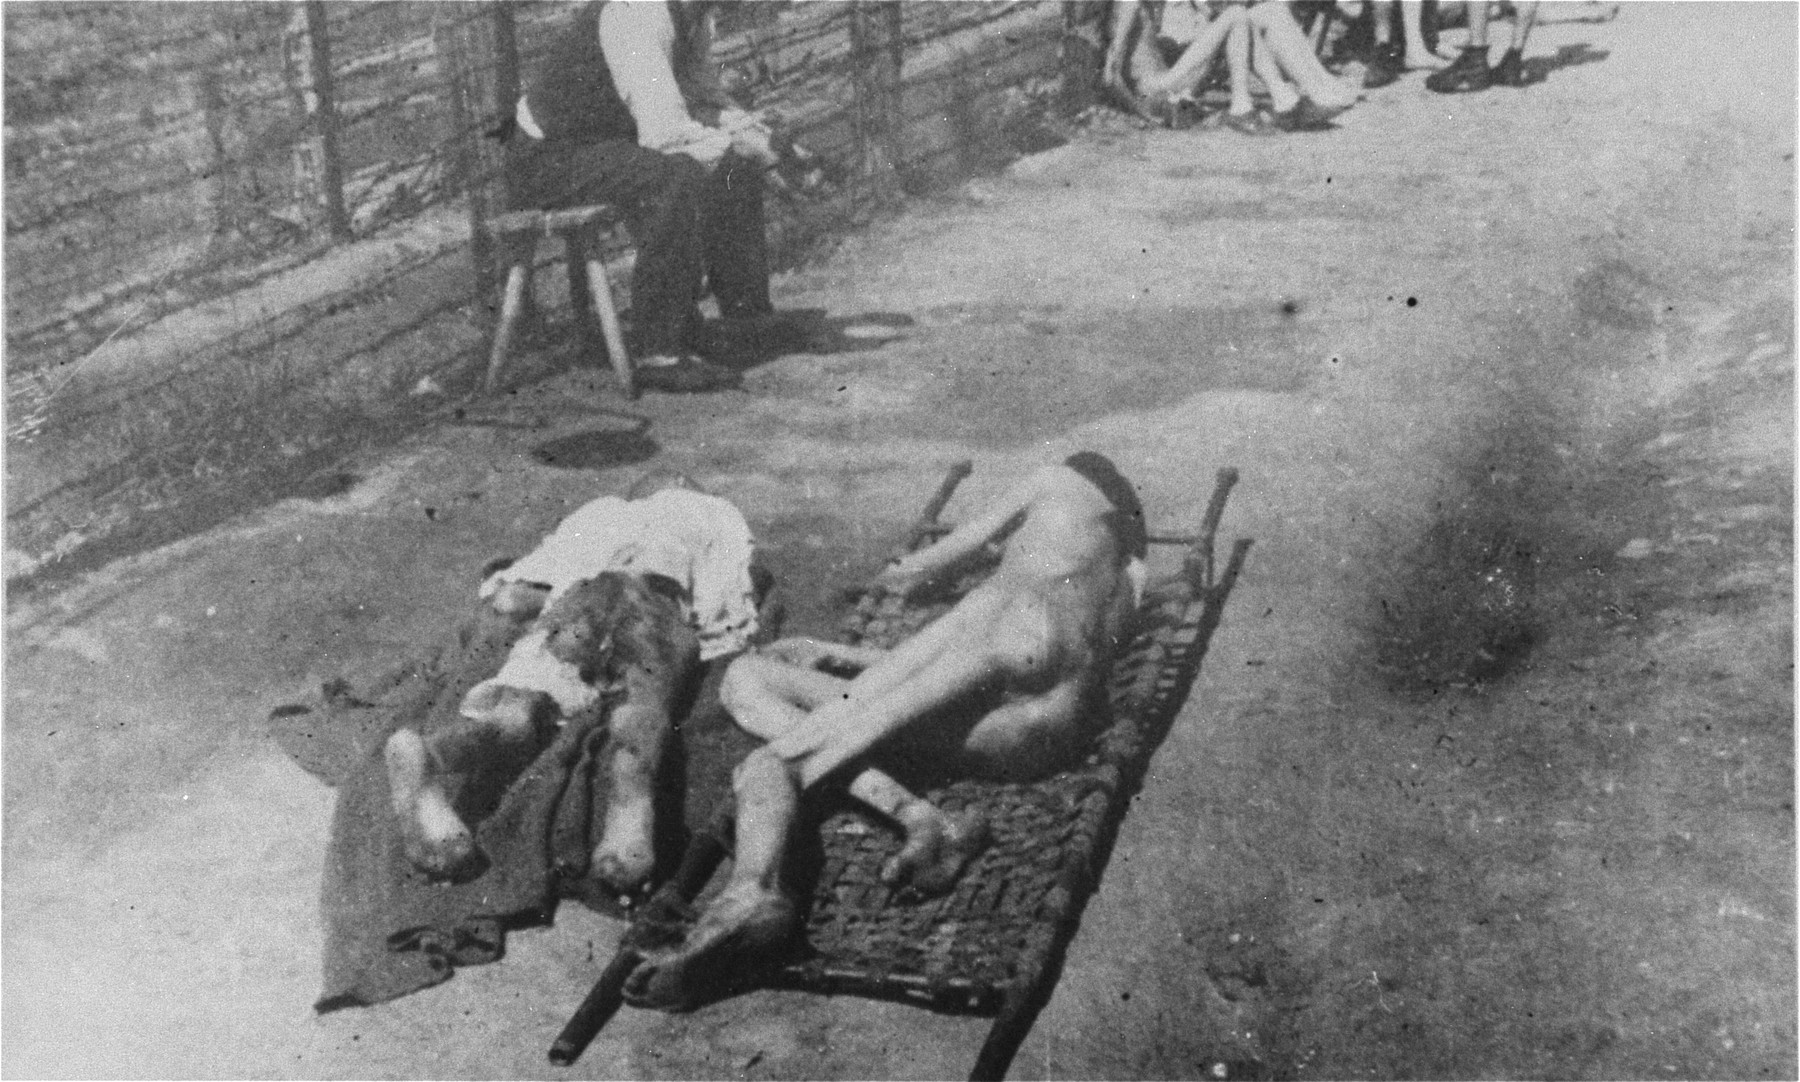 Two bodies lie on stretchers in Mauthausen after liberation.